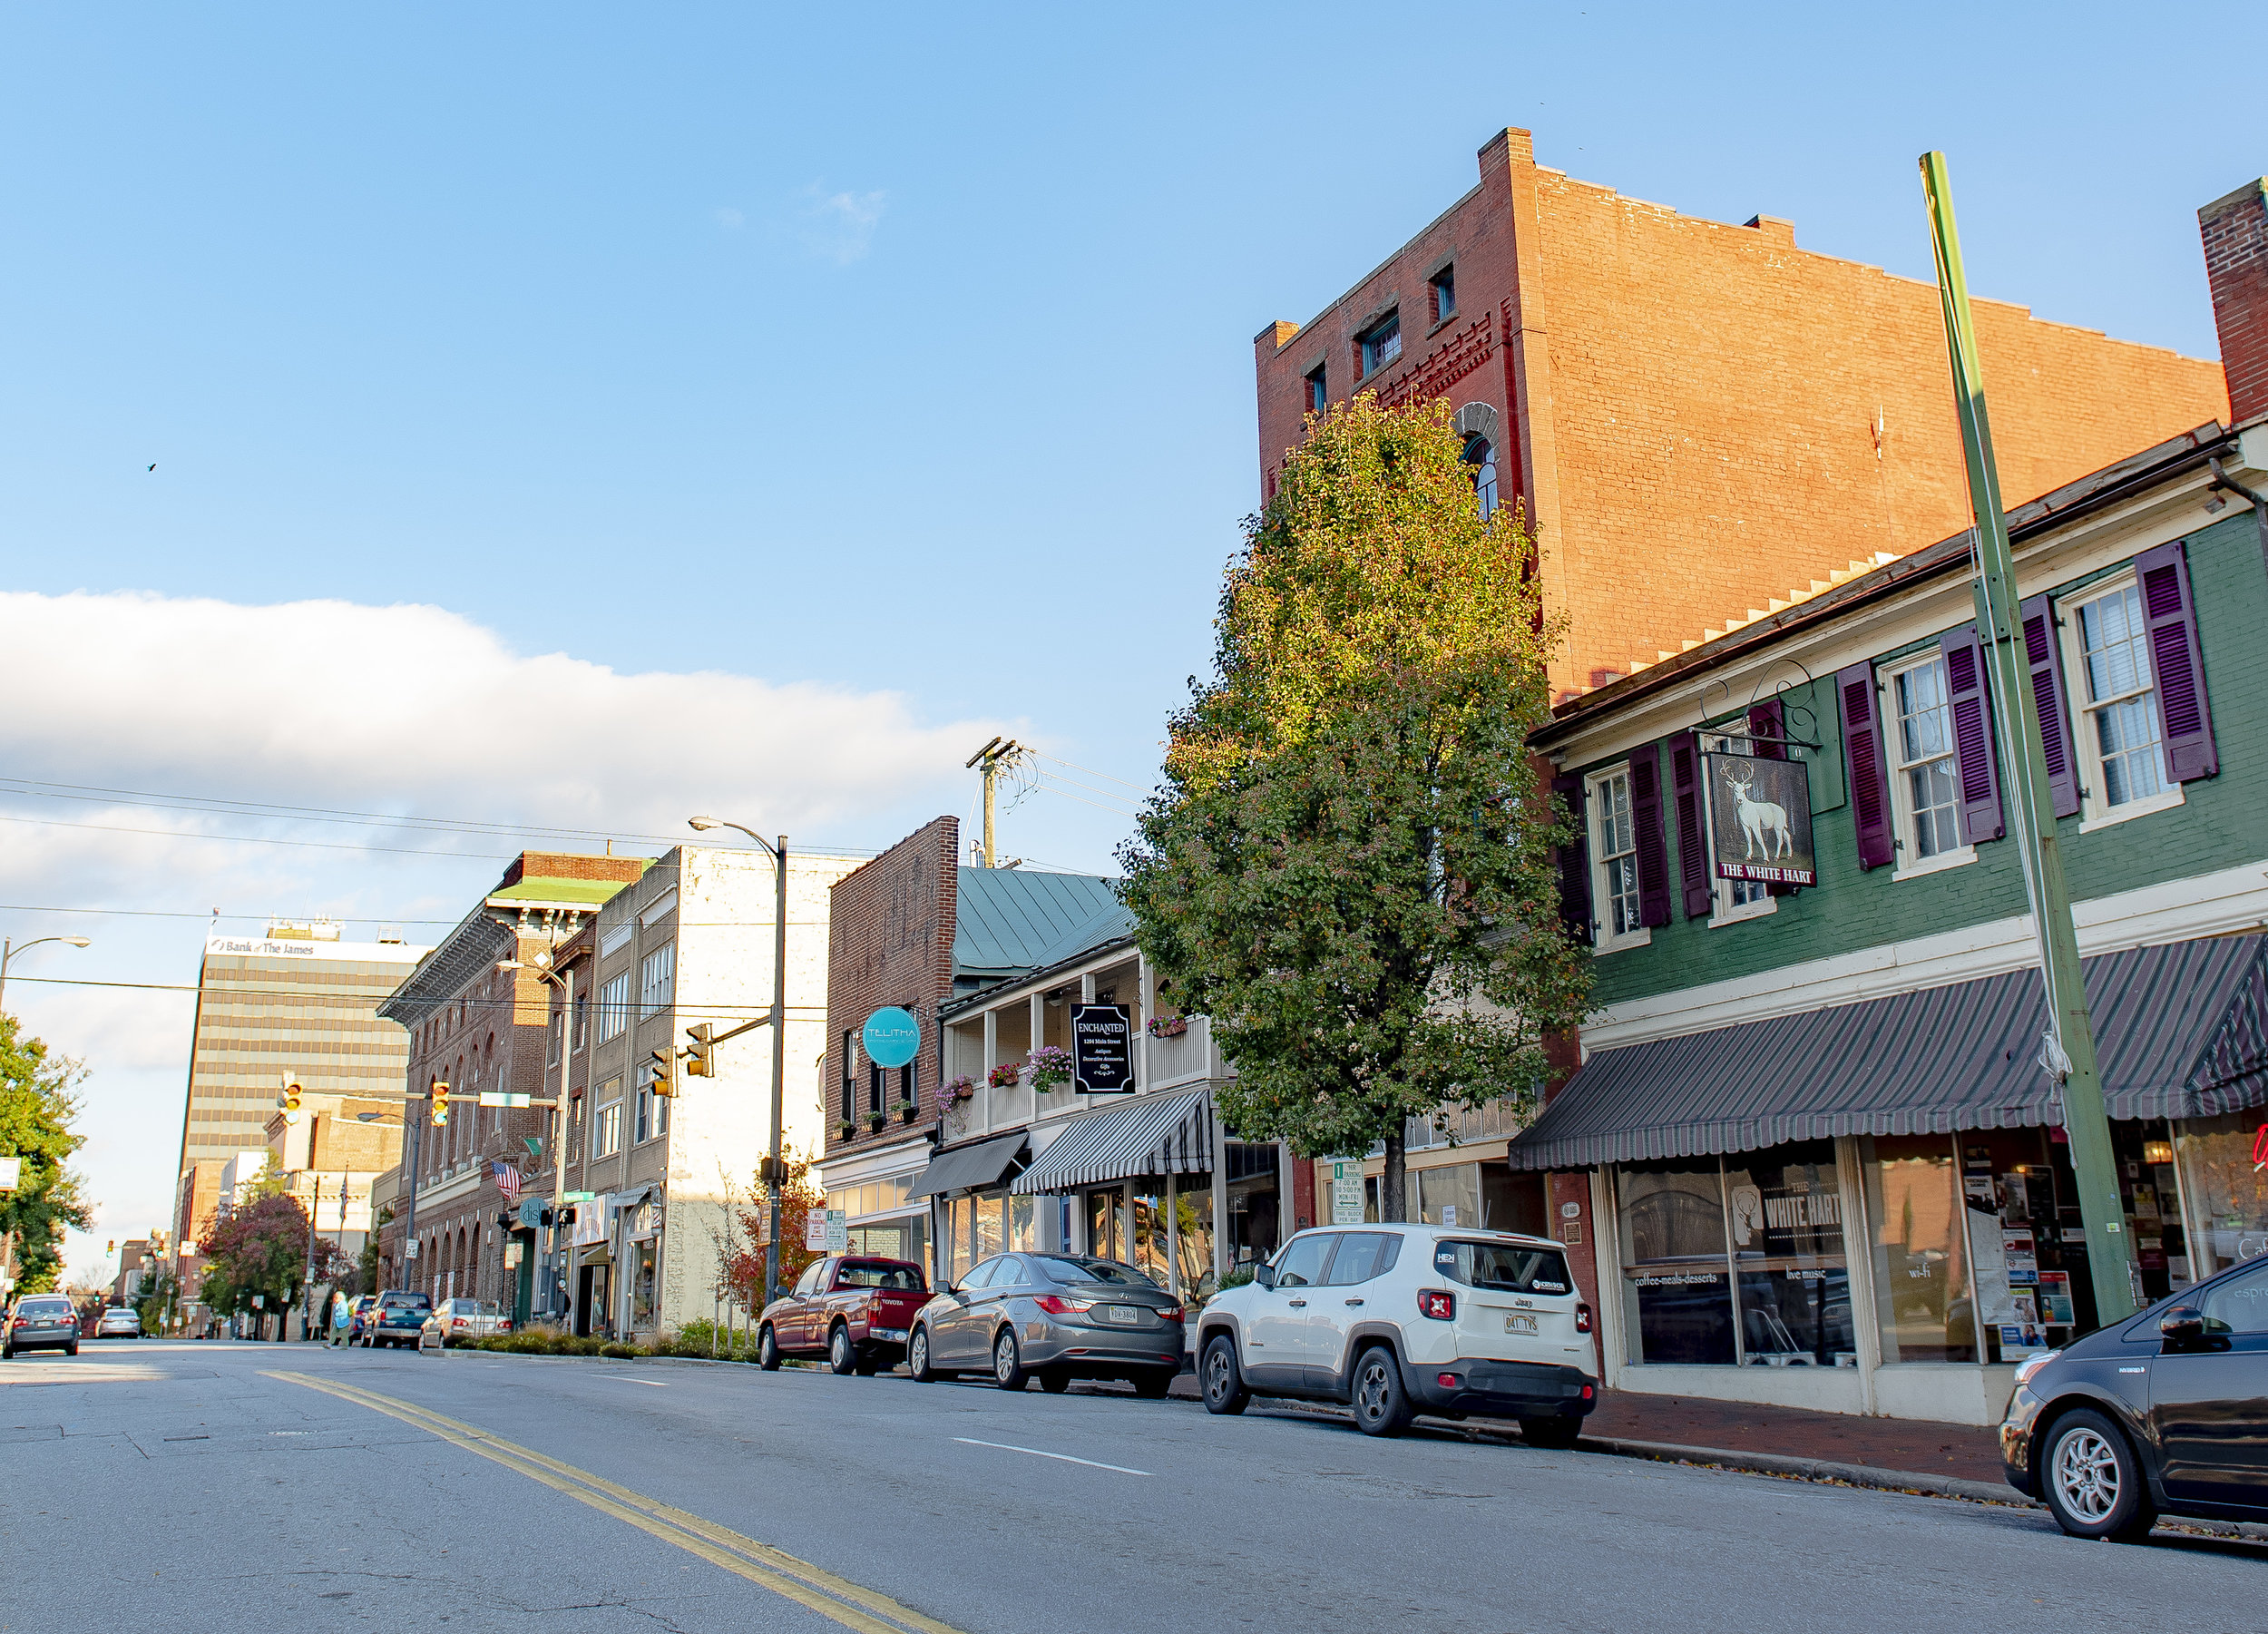 DL Gift Card Bundle - Go on a shopping (and eating) spree in Downtown Lynchburg with $50 gift cards to over ten retail and restaurant shops!WINNER: Sumner Jenkins